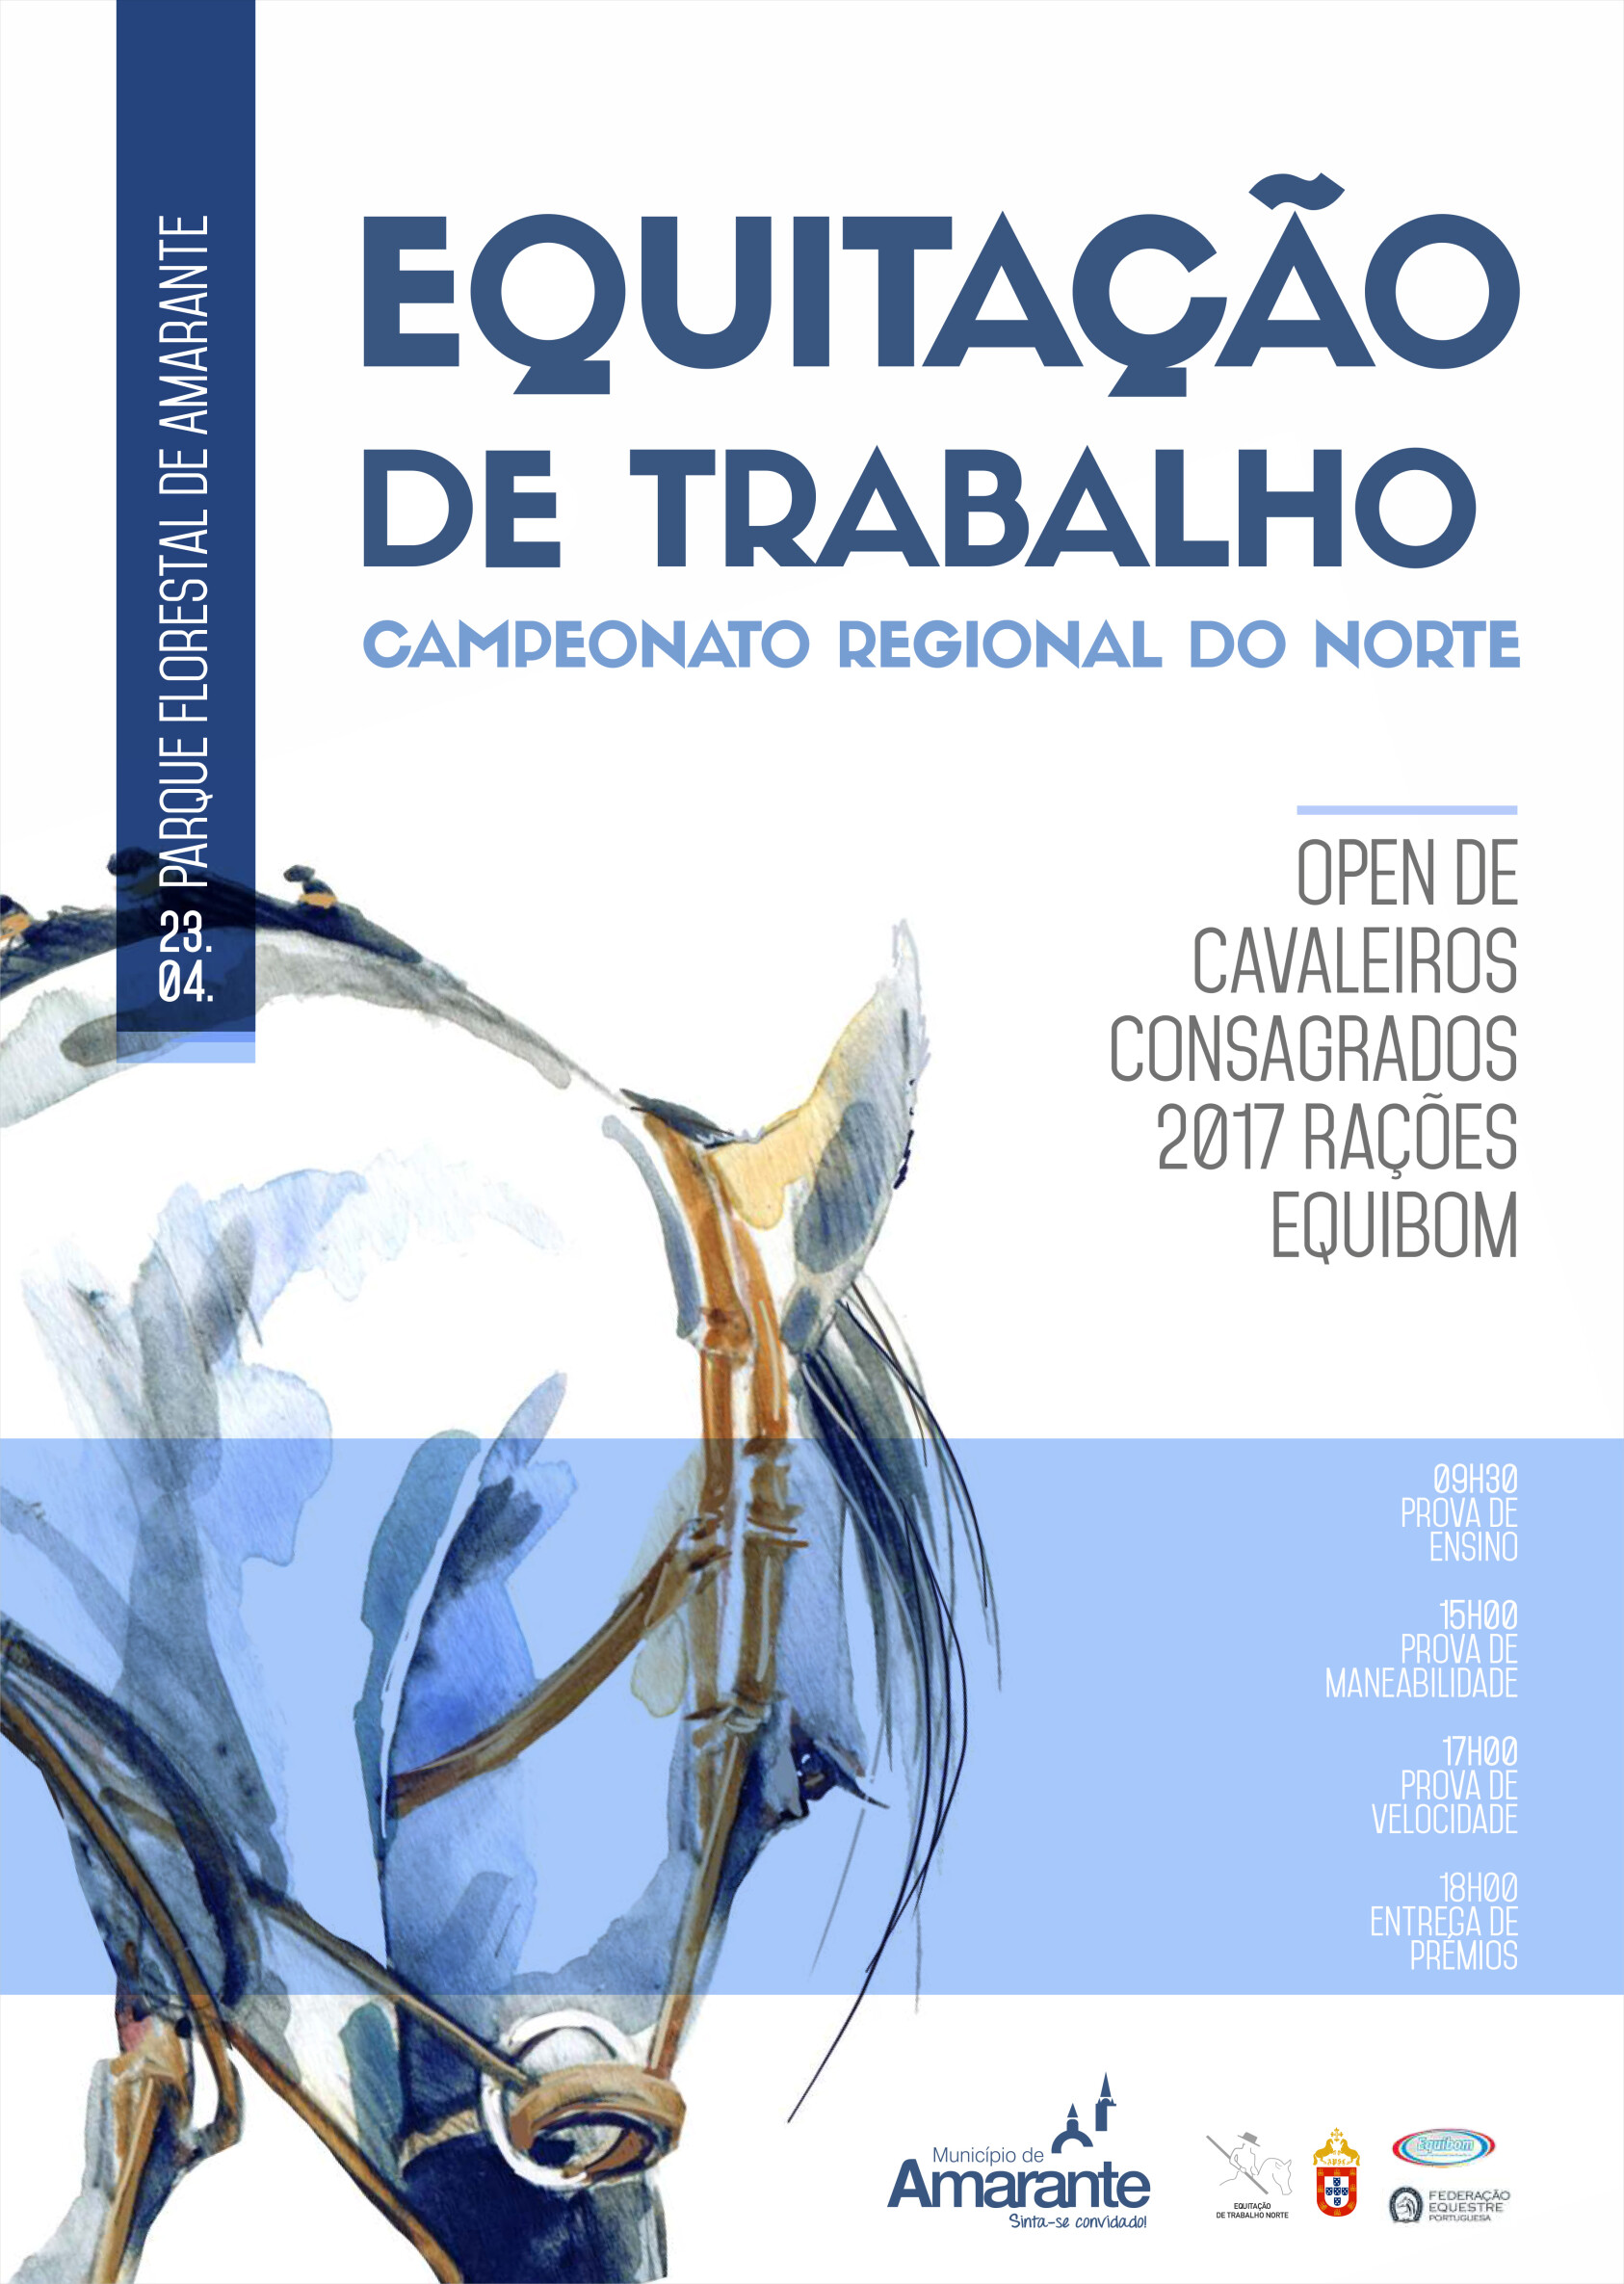 CARTAZ CAMPEONATO REGIONAL DO NORTE.jpg